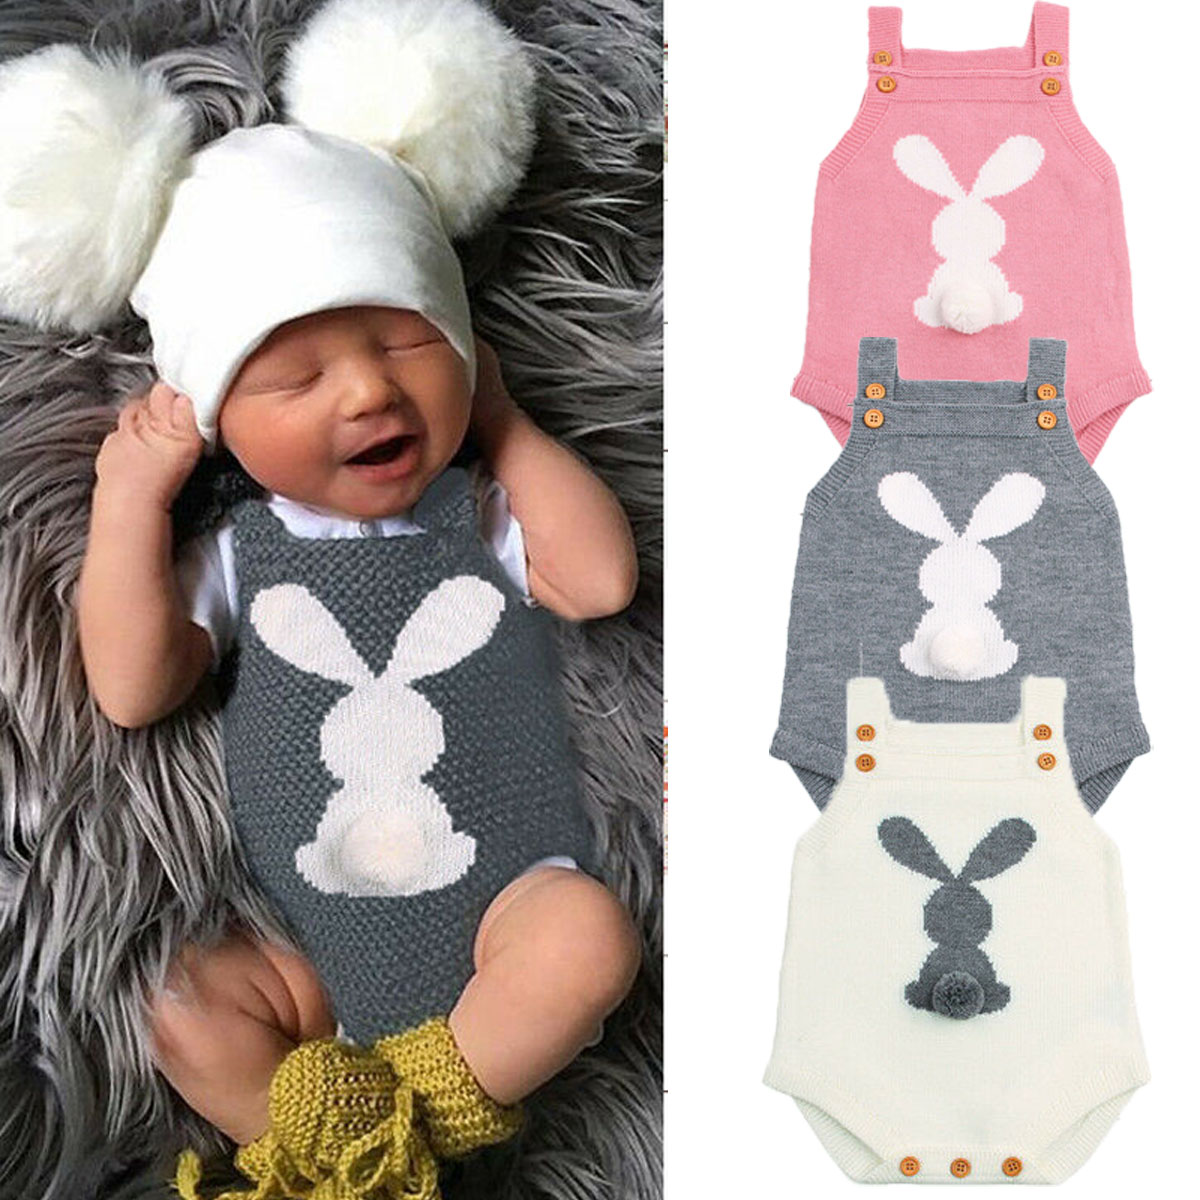 d713f203619d HOT Newborn Baby Boy Girls Bunny Knitting Wool Romper Bodysuit ...